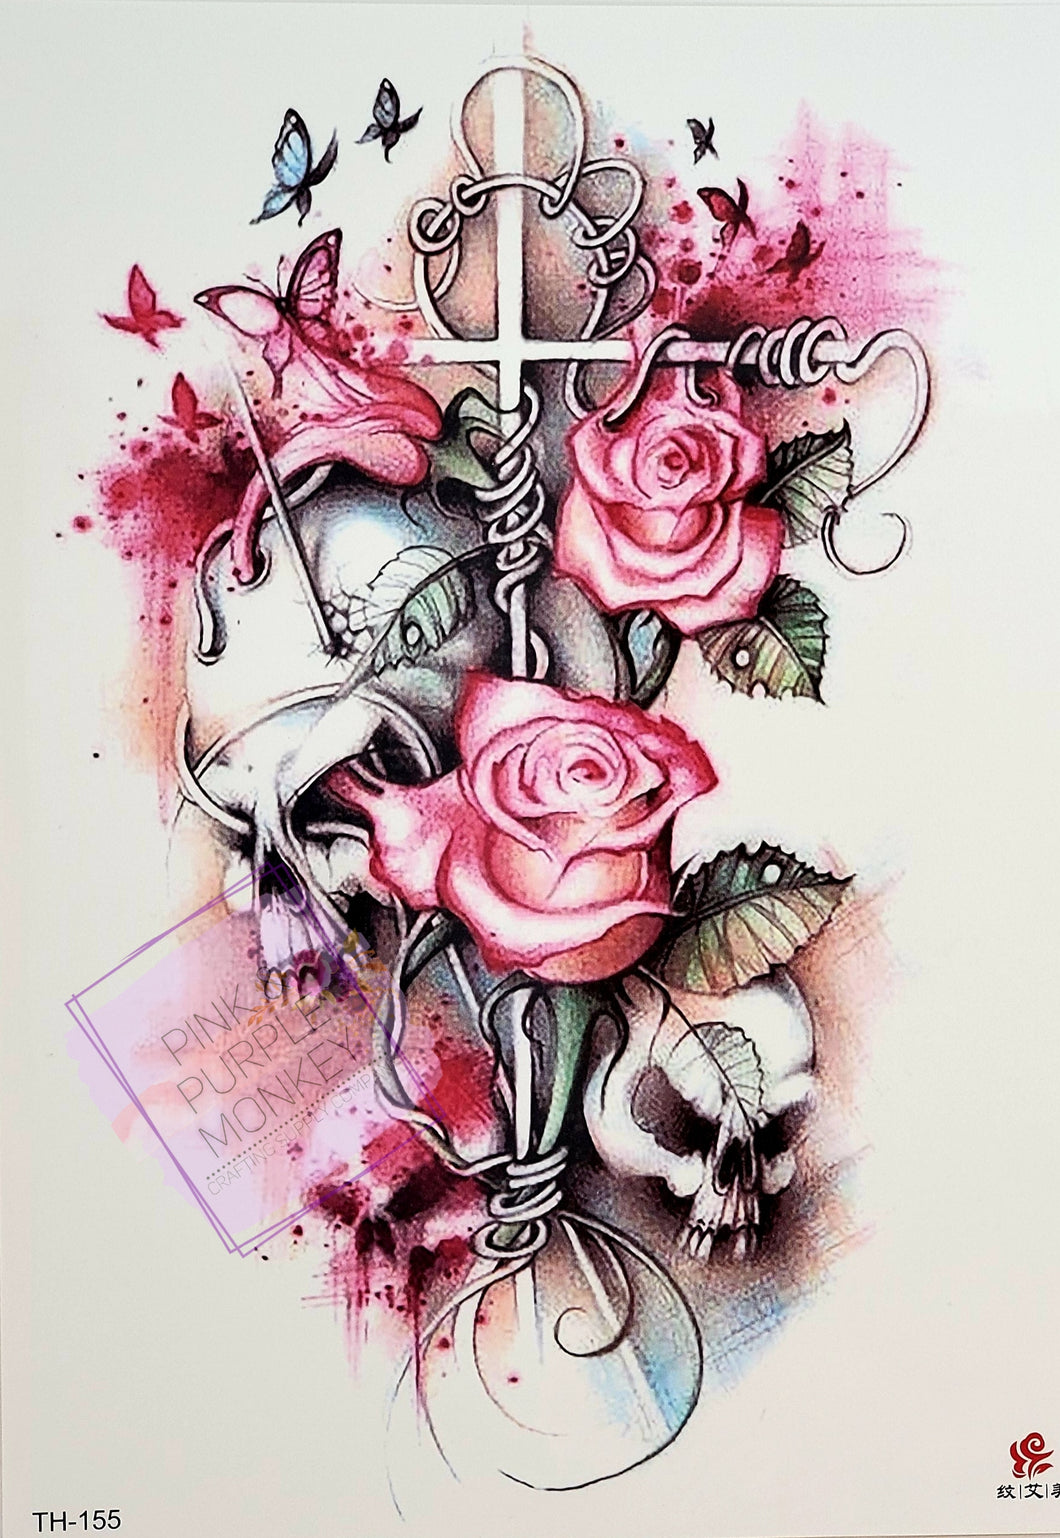 Cross with Roses and Skulls Tattoo - 8.5